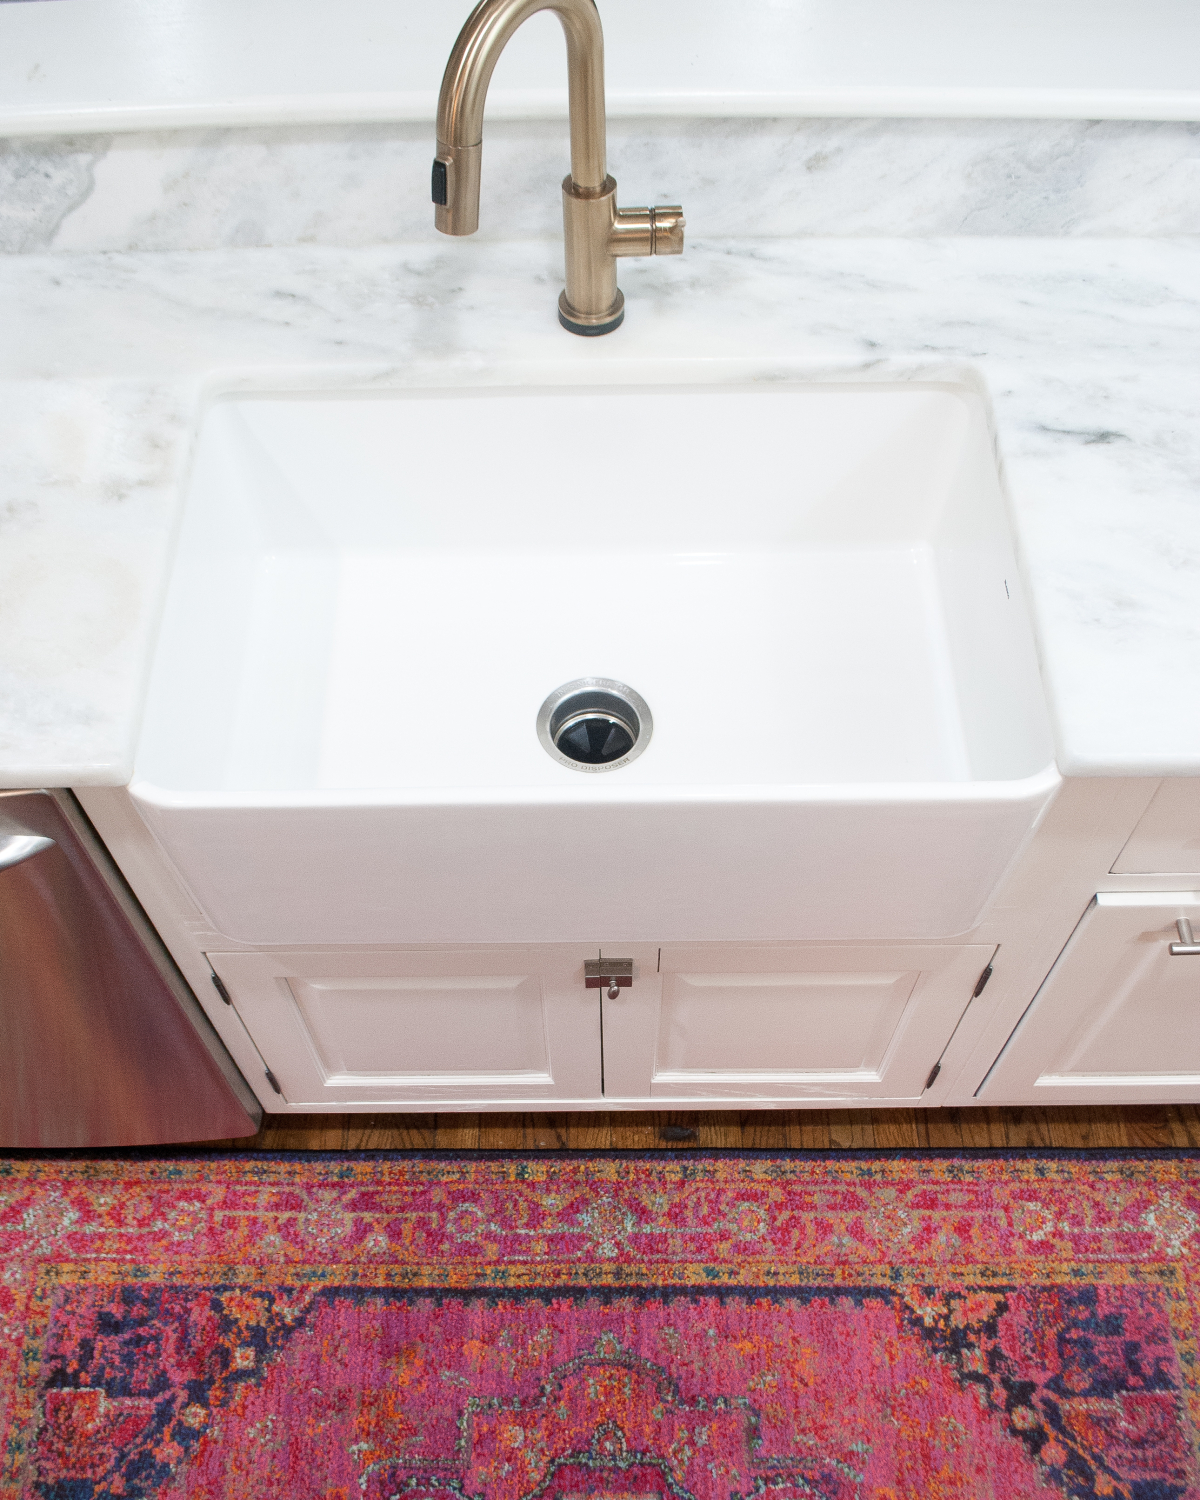 How to clean a farmhouse sink so it looks brand new, in about a minute!